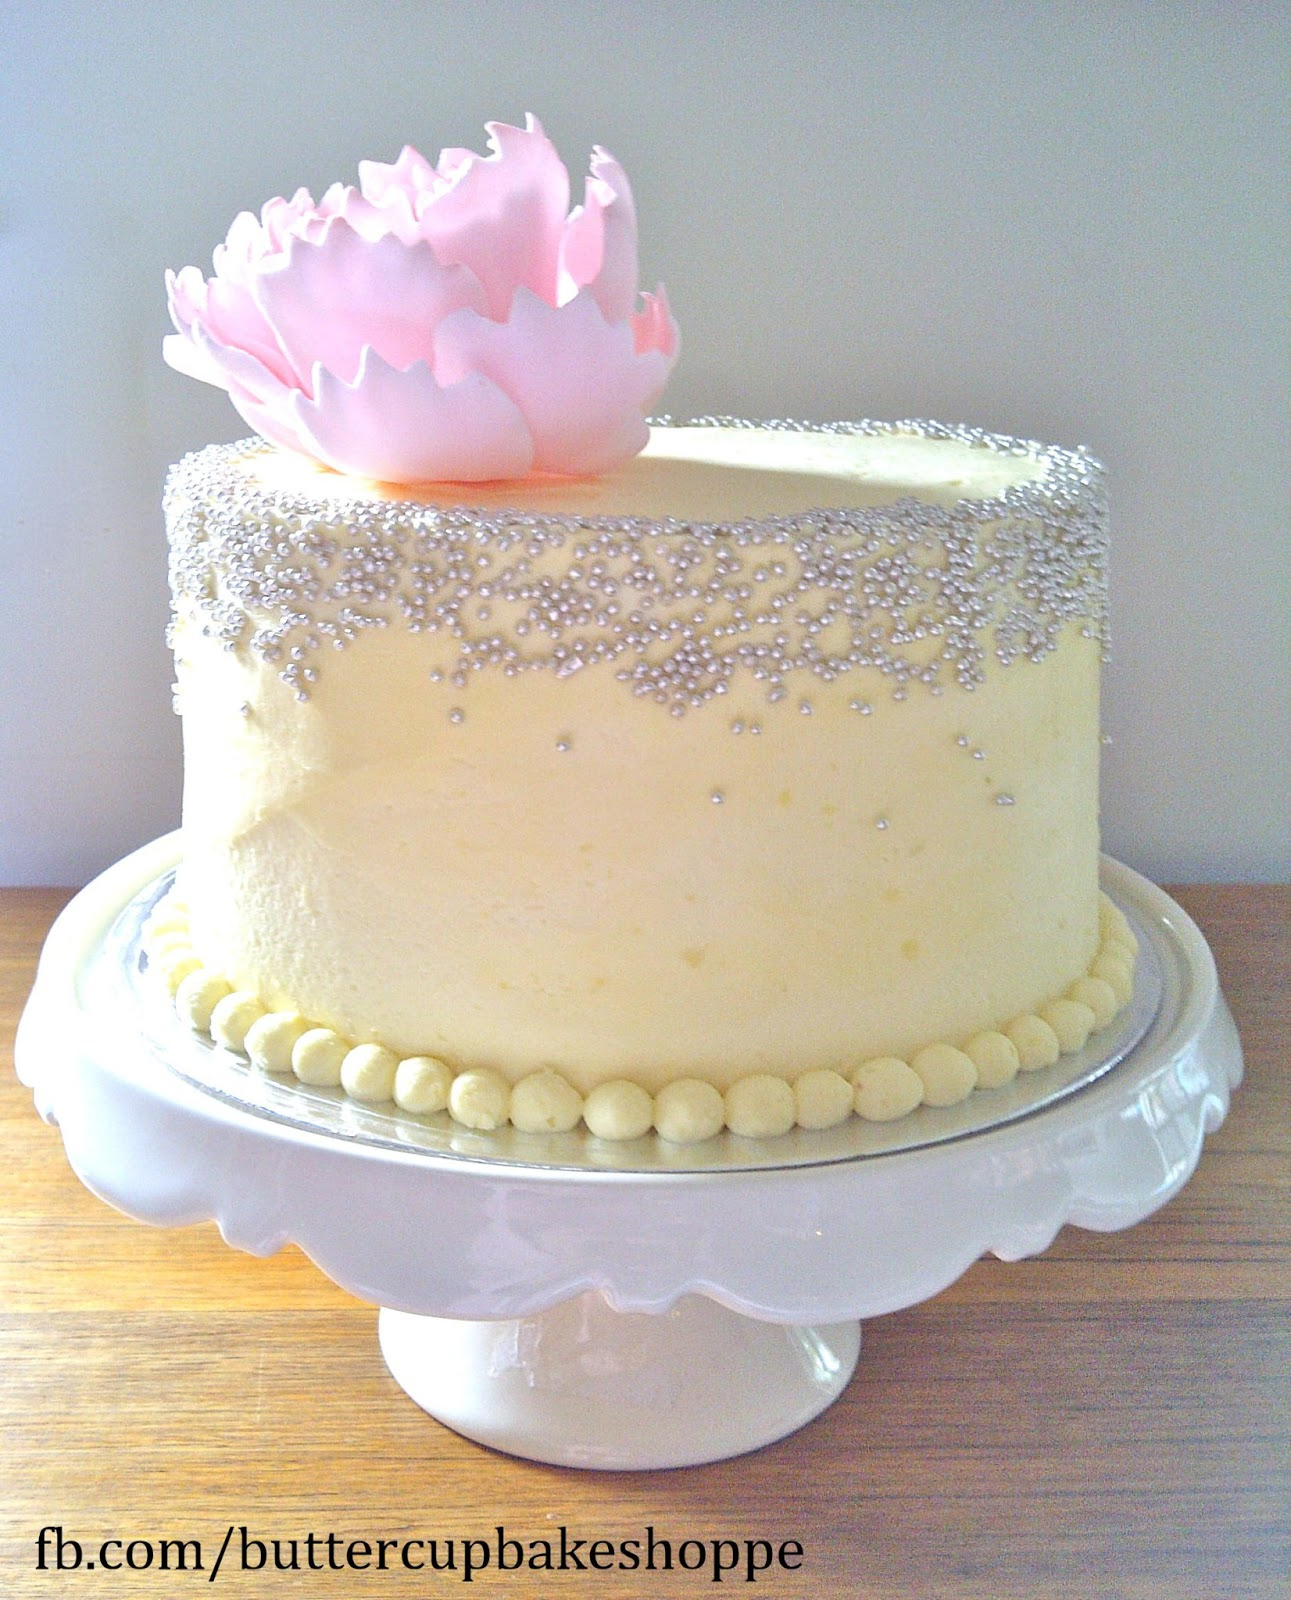 Popular Buttercup Bakeshoppe TQ58